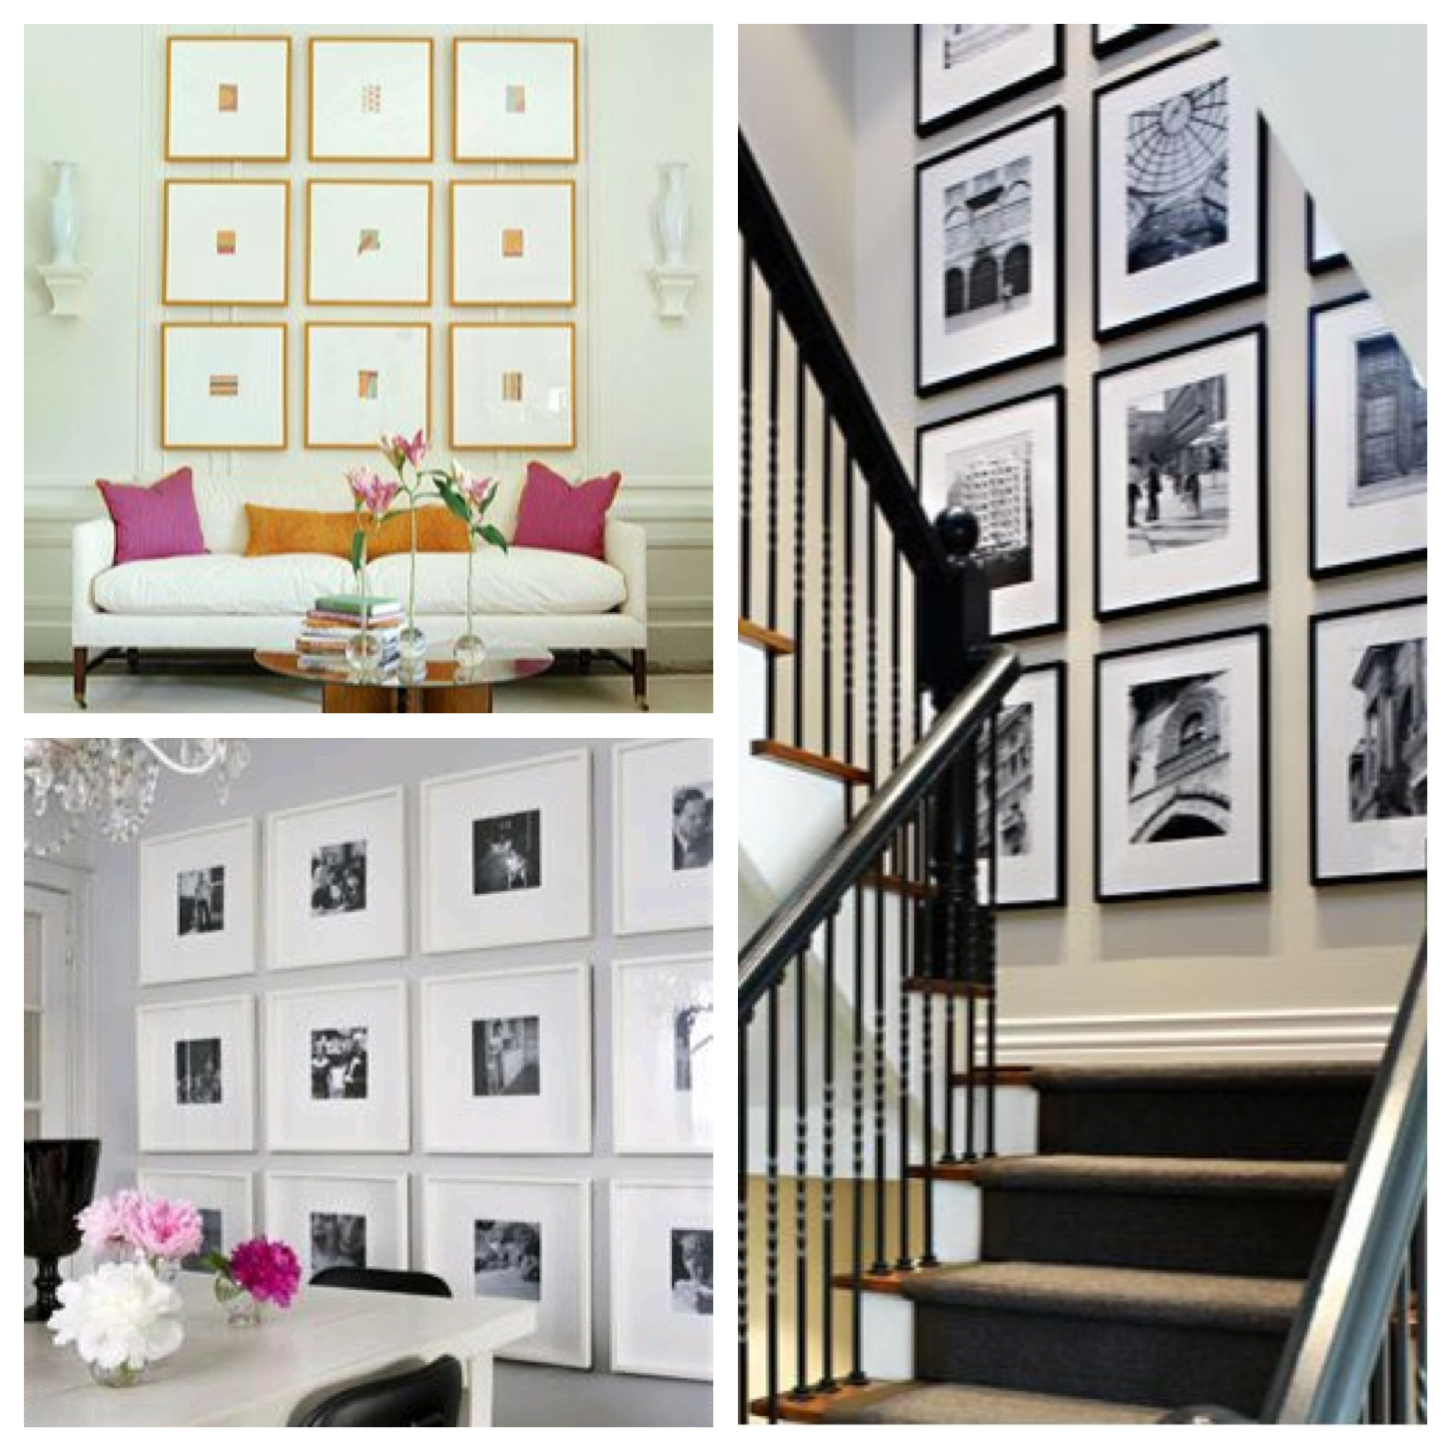 gallery wall | Life in Classics